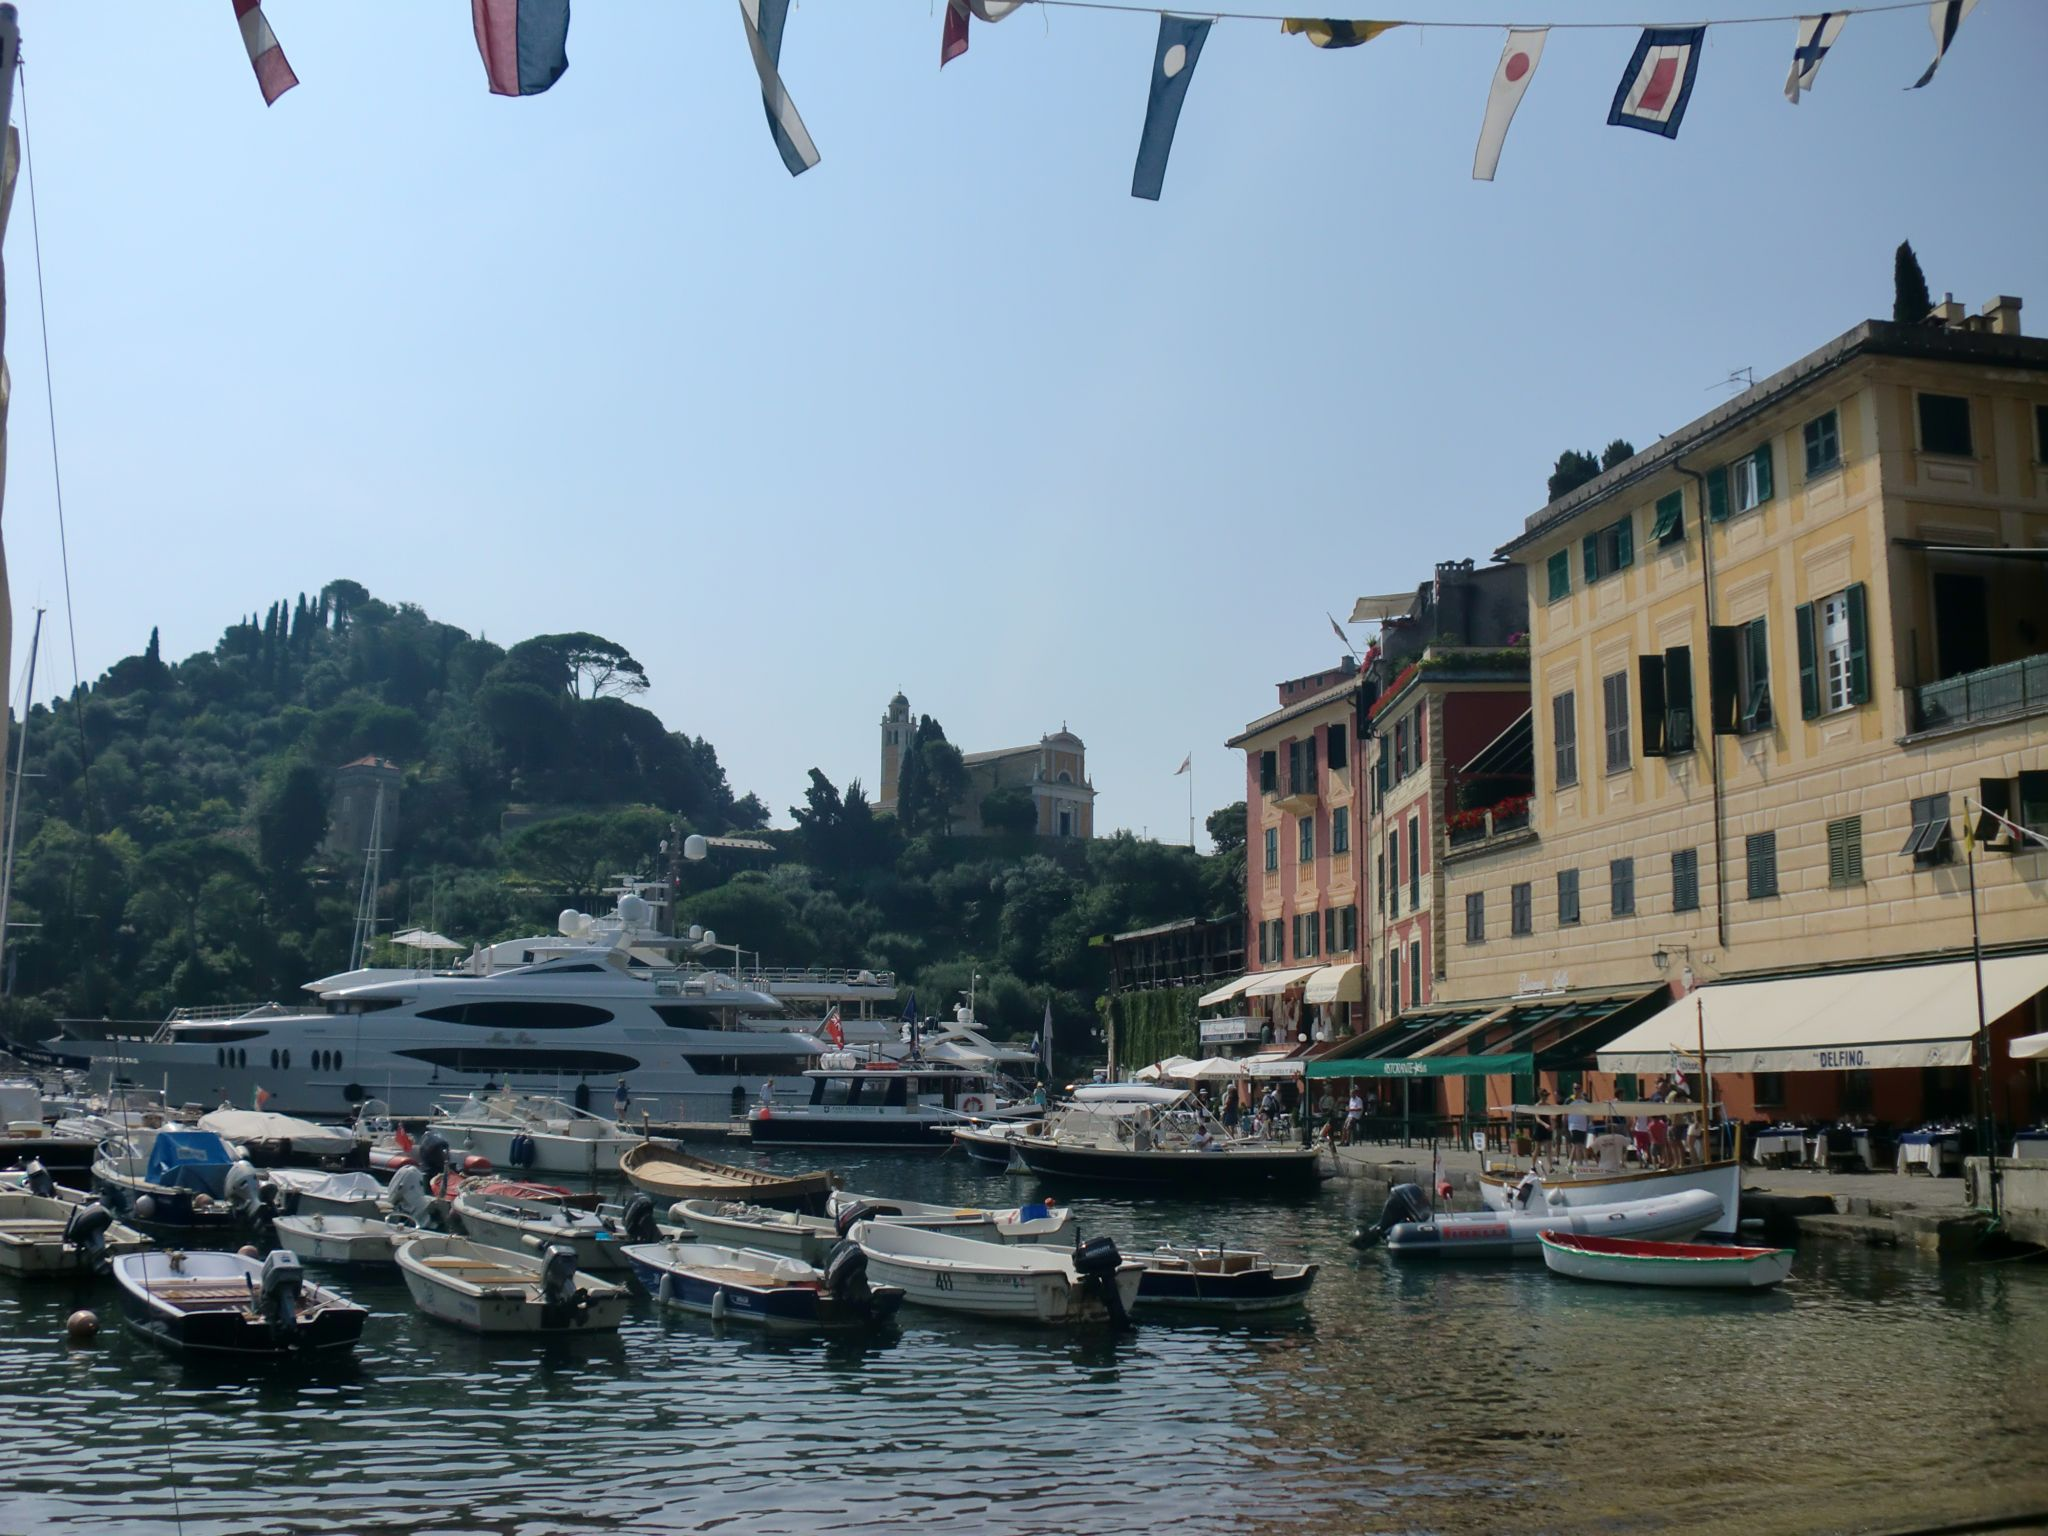 Portofino 1 - Portofino: a small pearl on the sea